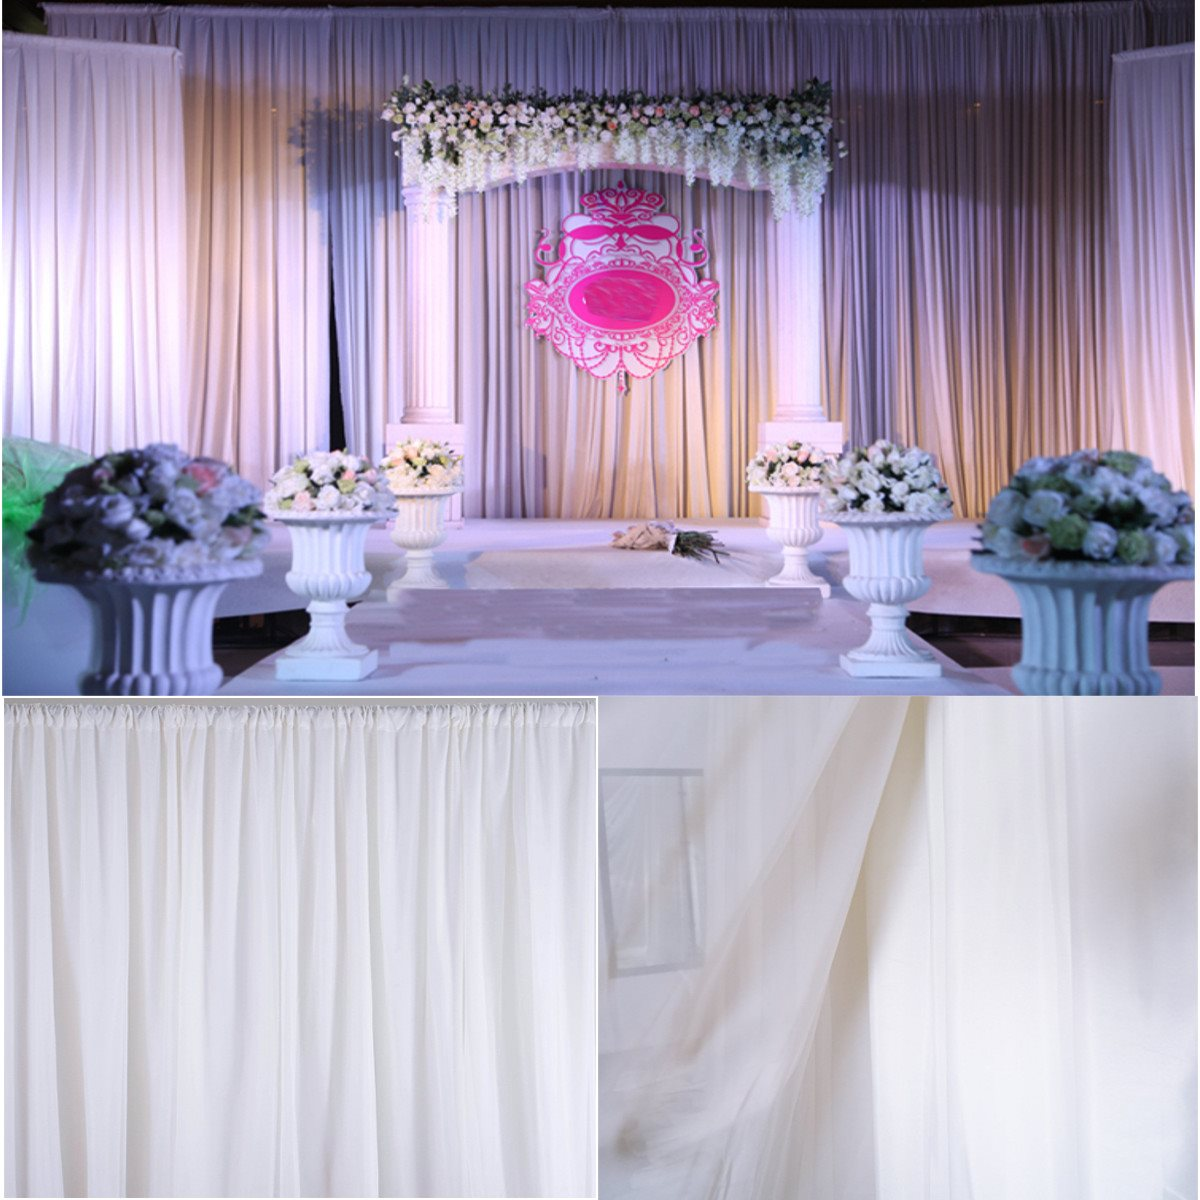 Wedding White Sheer Silk Drapes Panels 2.4x1.5M Hanging Curtains Photo  Backdrop Textiles Accessories